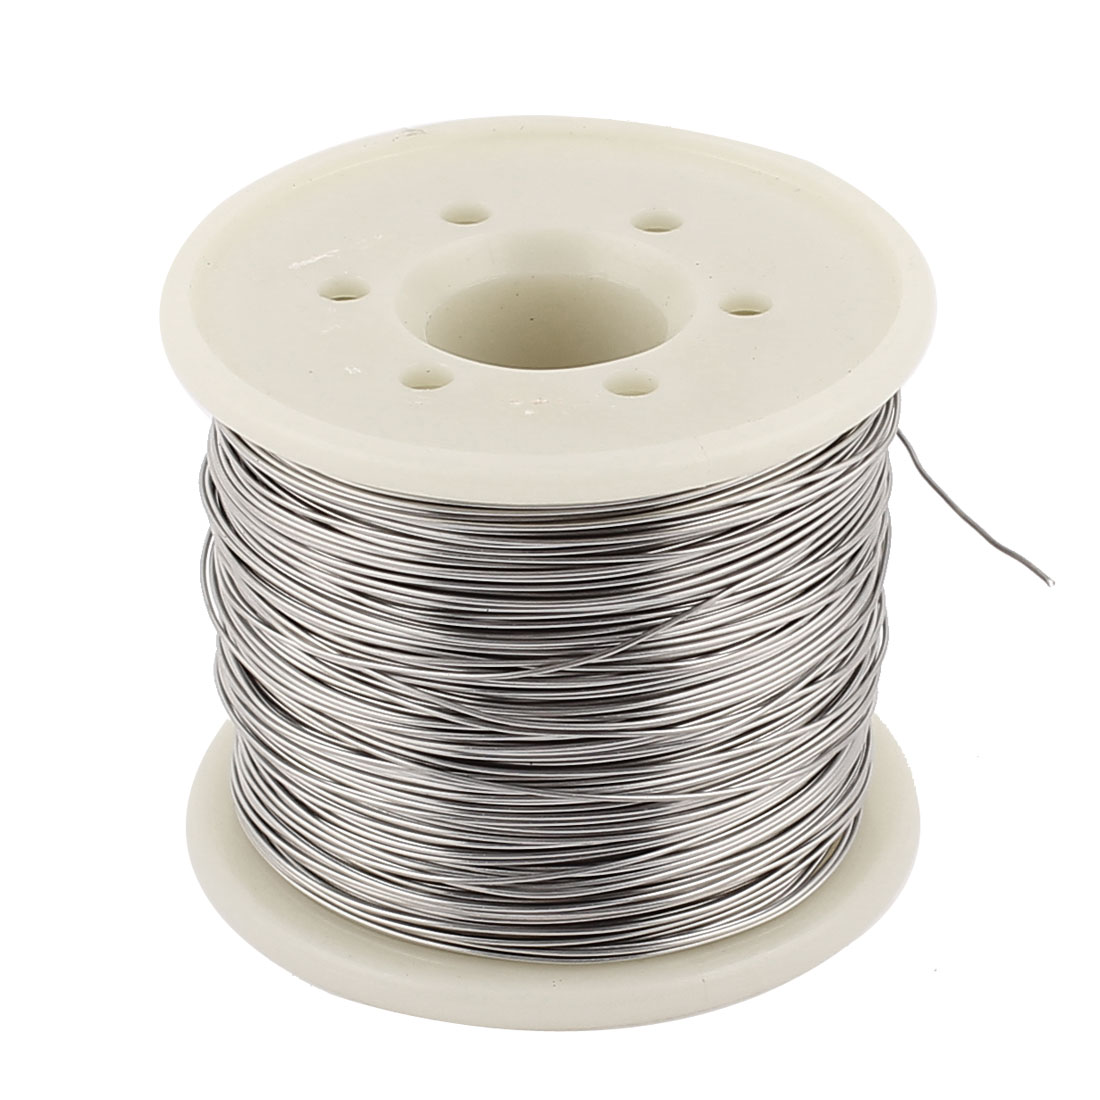 Nichrome 80 0.5mm 24 Gauge AWG 70M Roll 5.755 Ohms/m Heater Wire